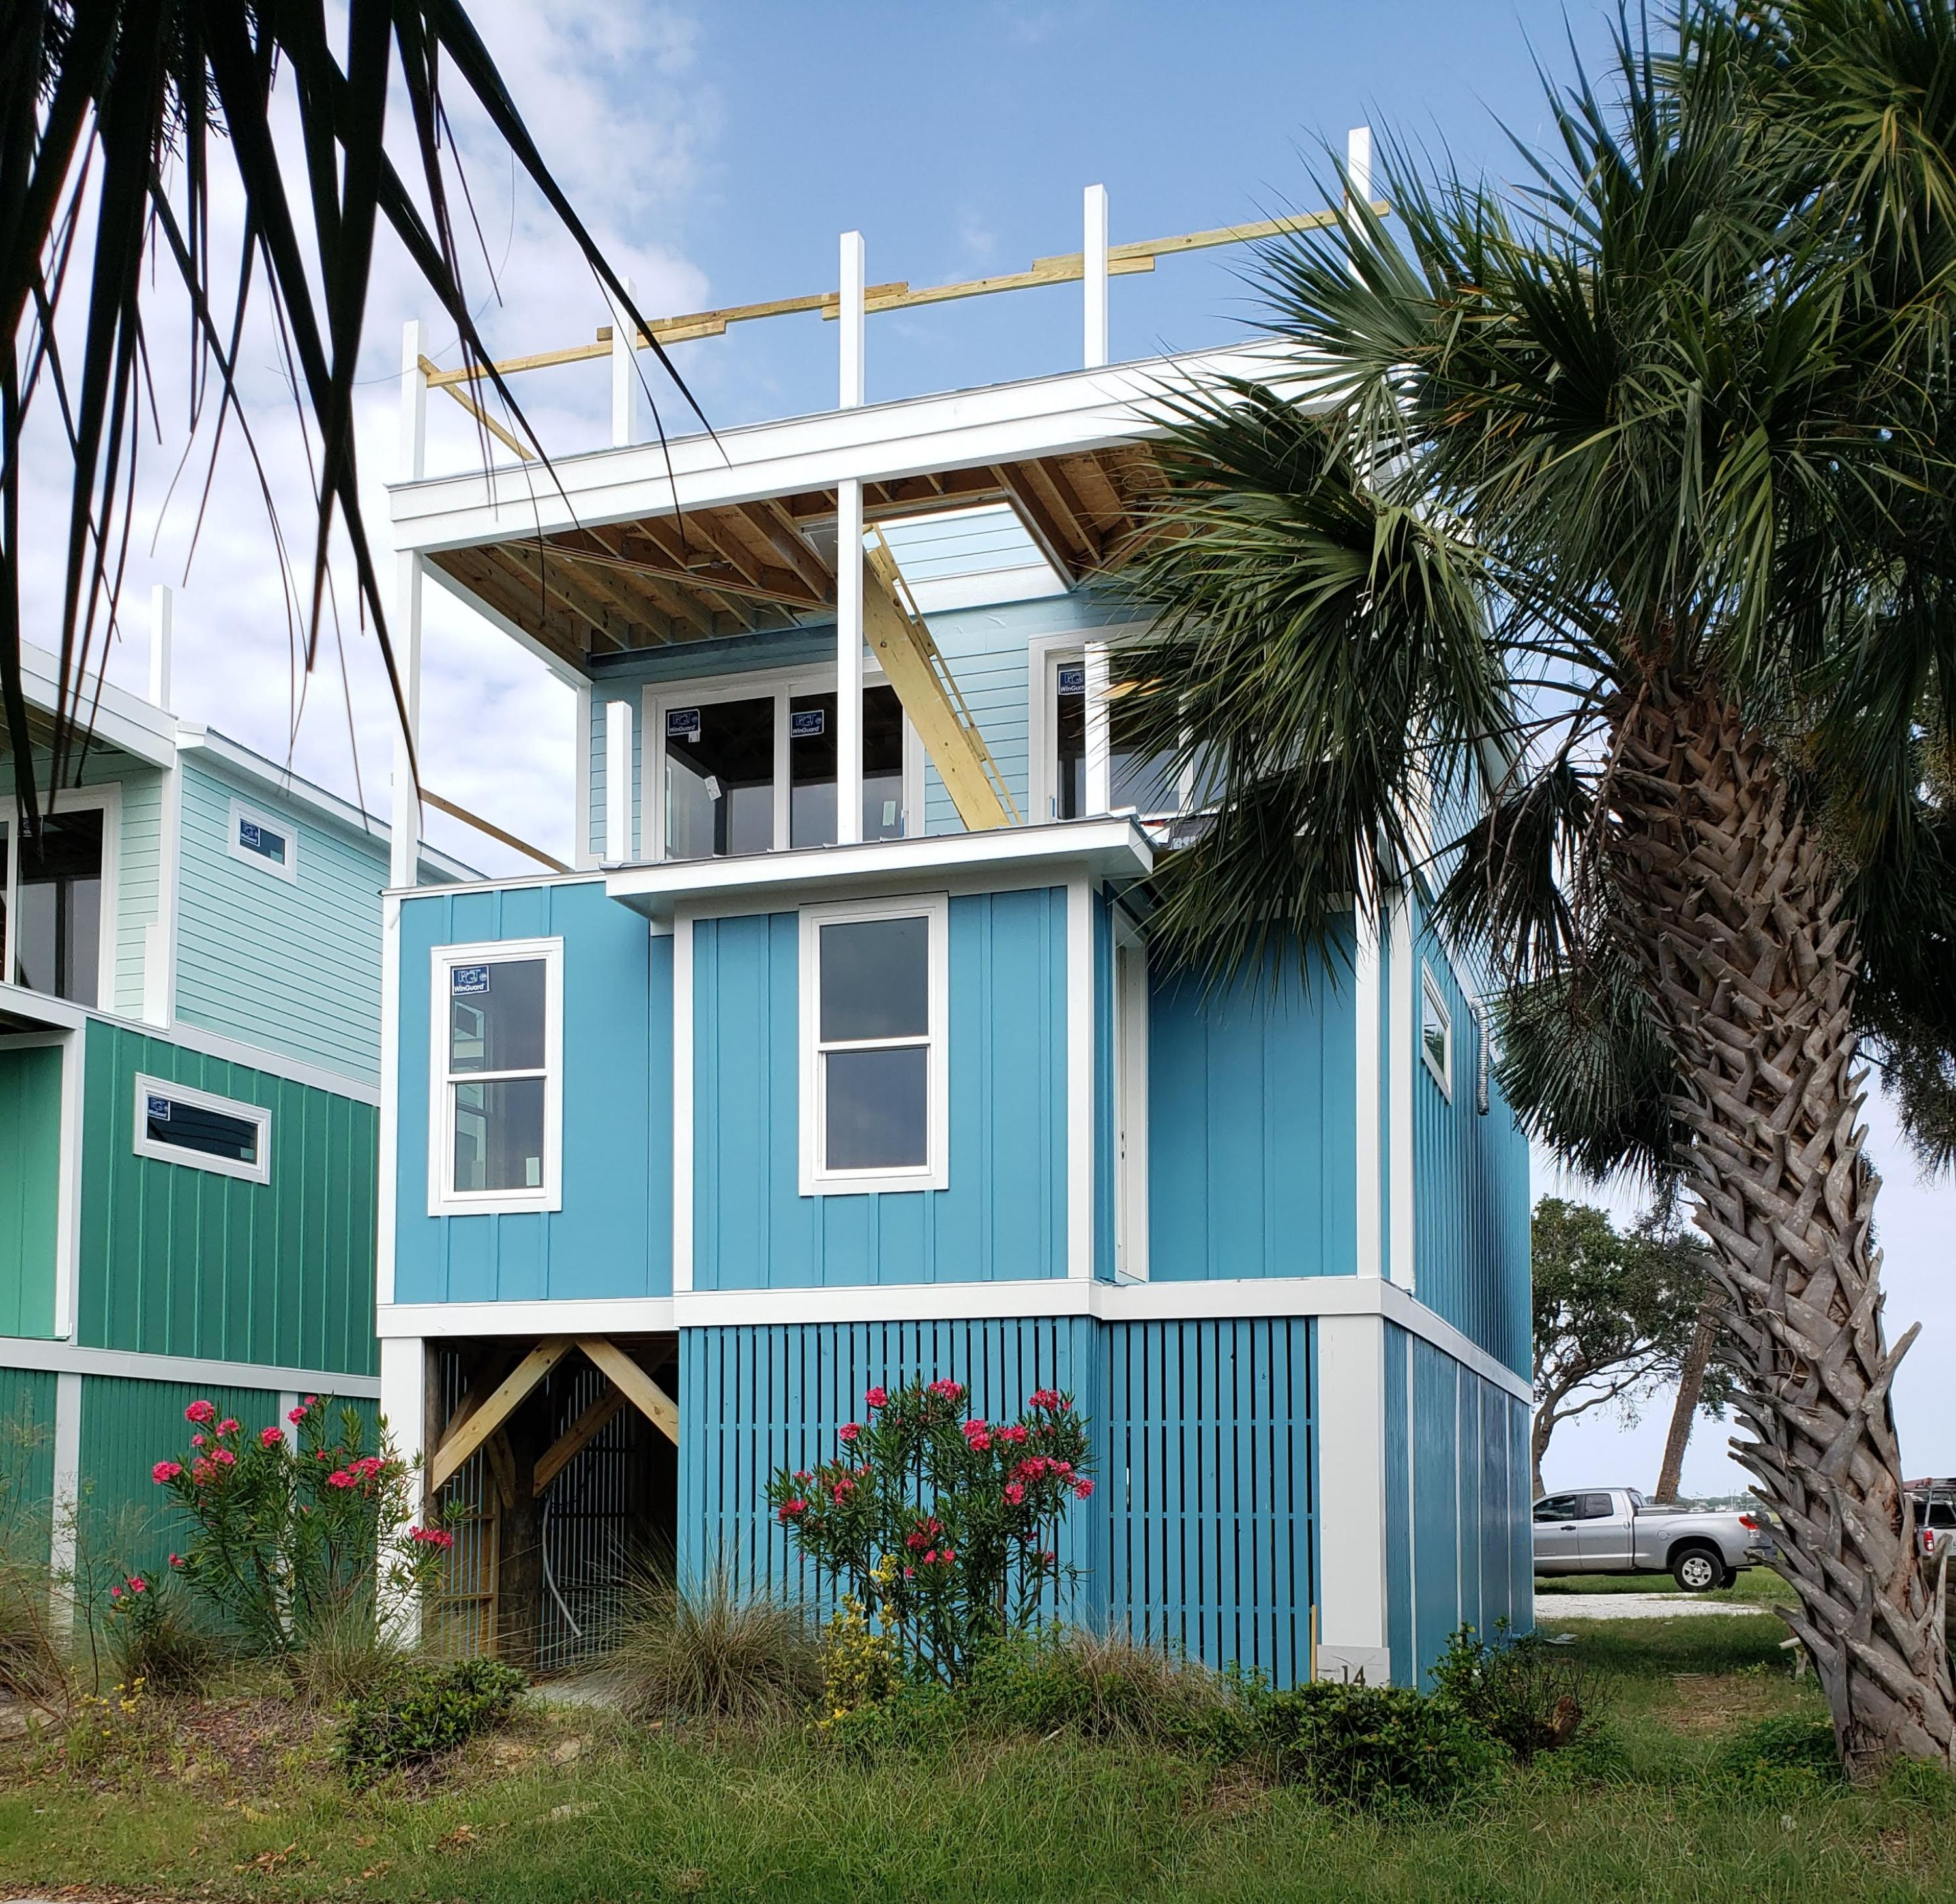 Mariners Cay Homes For Sale - 10 Mariners Cay, Folly Beach, SC - 24